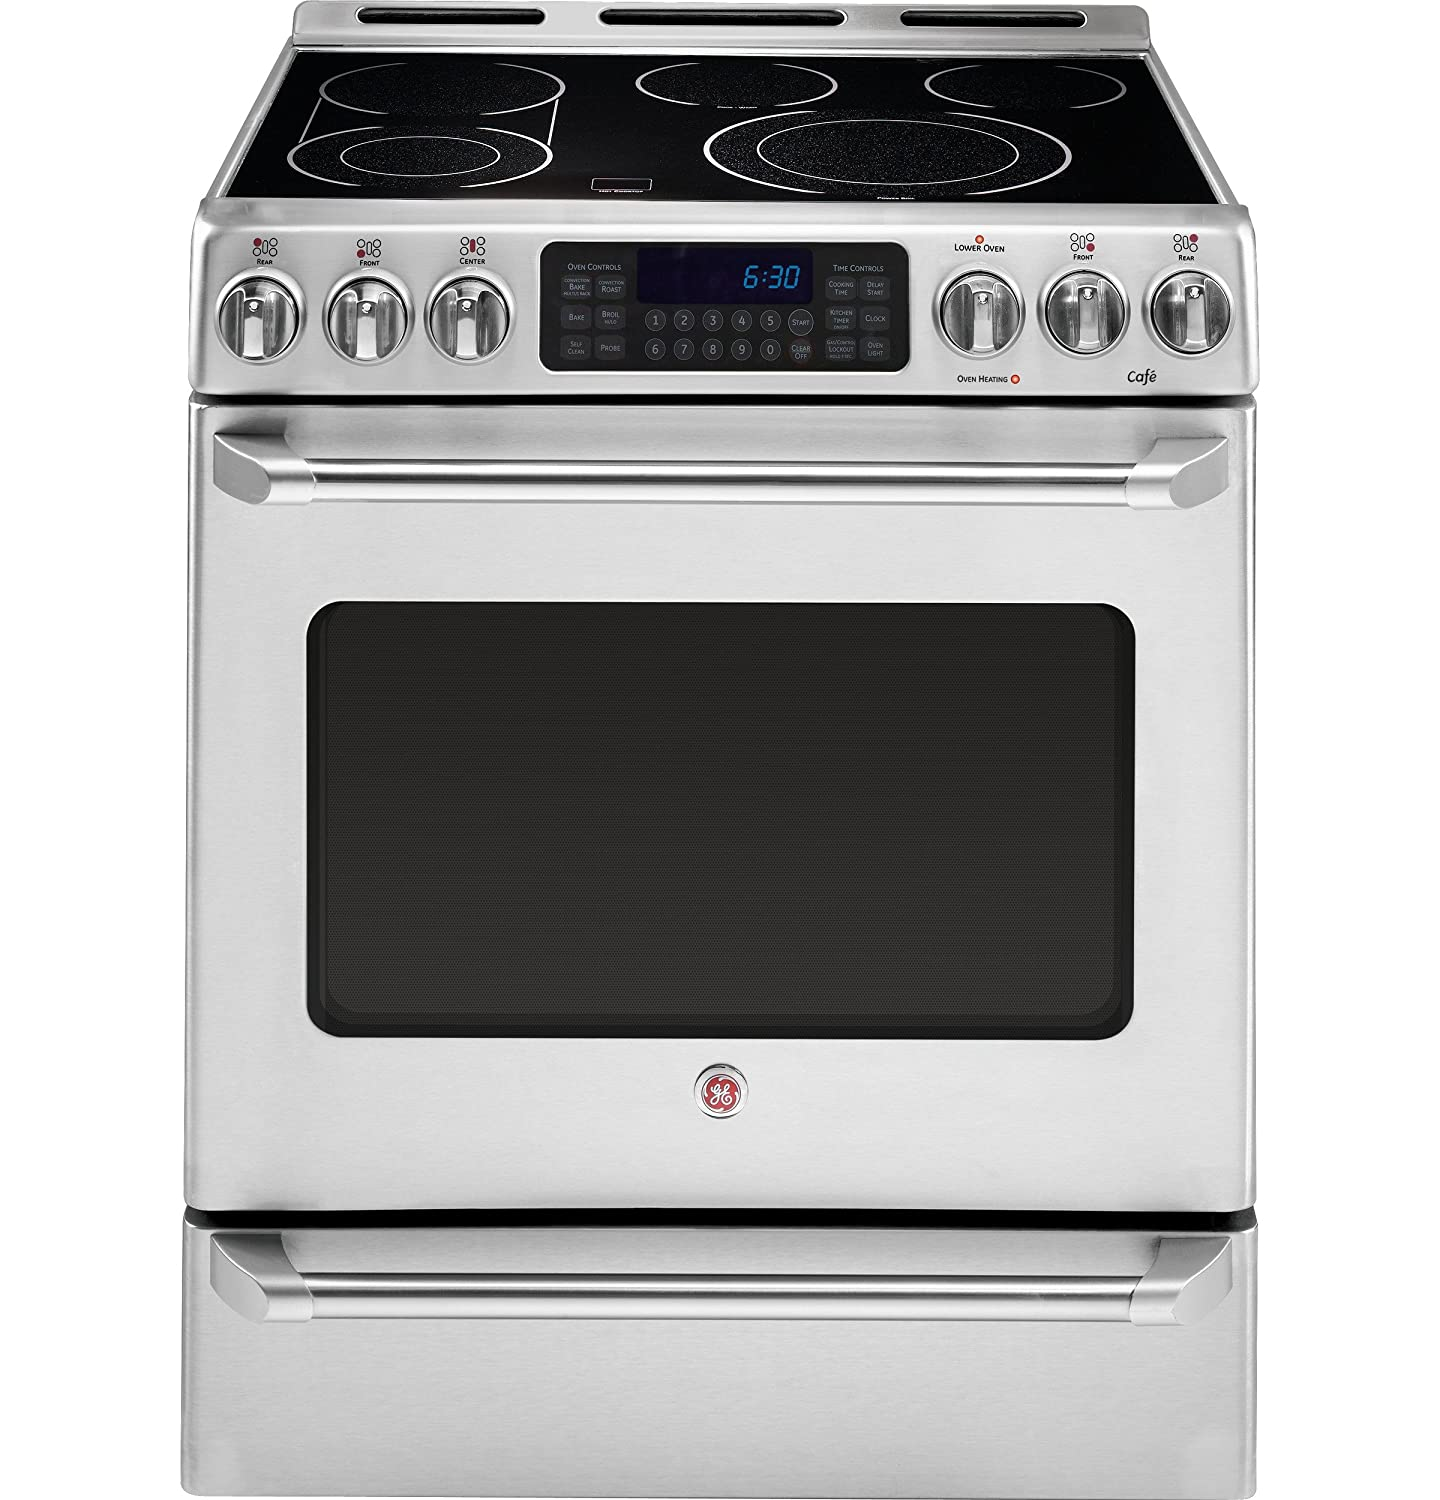 The Best Gas Range Oven